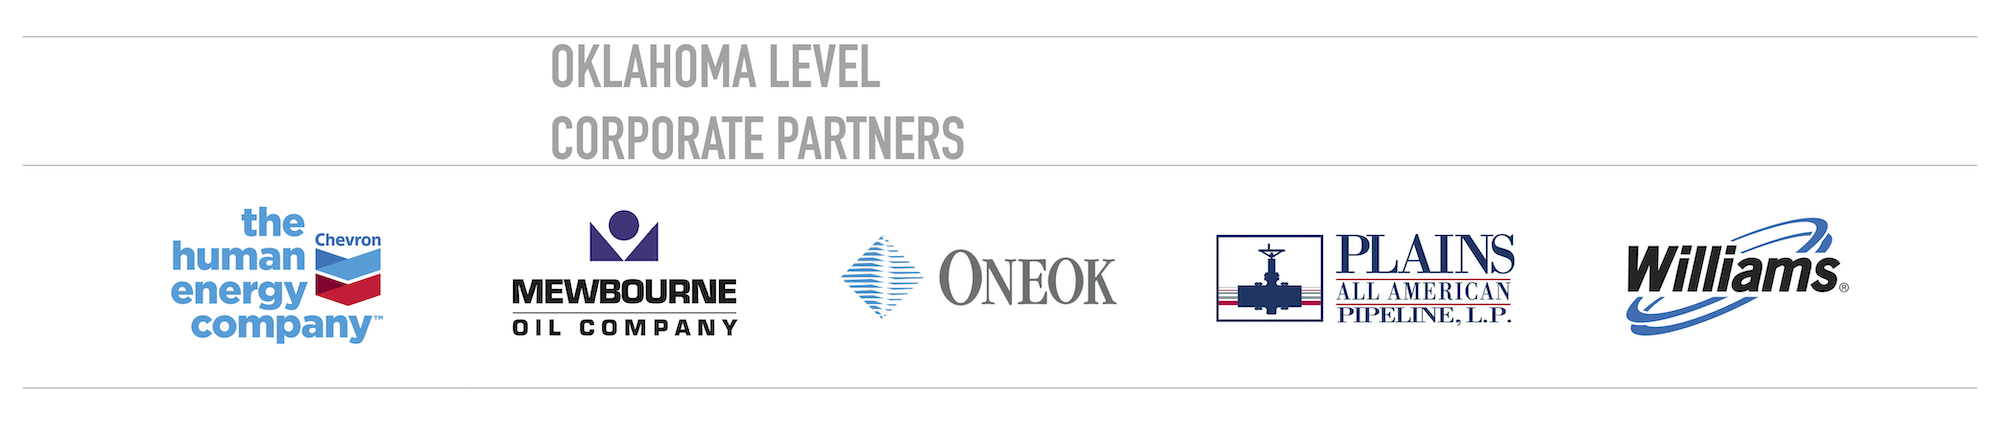 Thank You to Our Oklahoma Level Corporate Partners